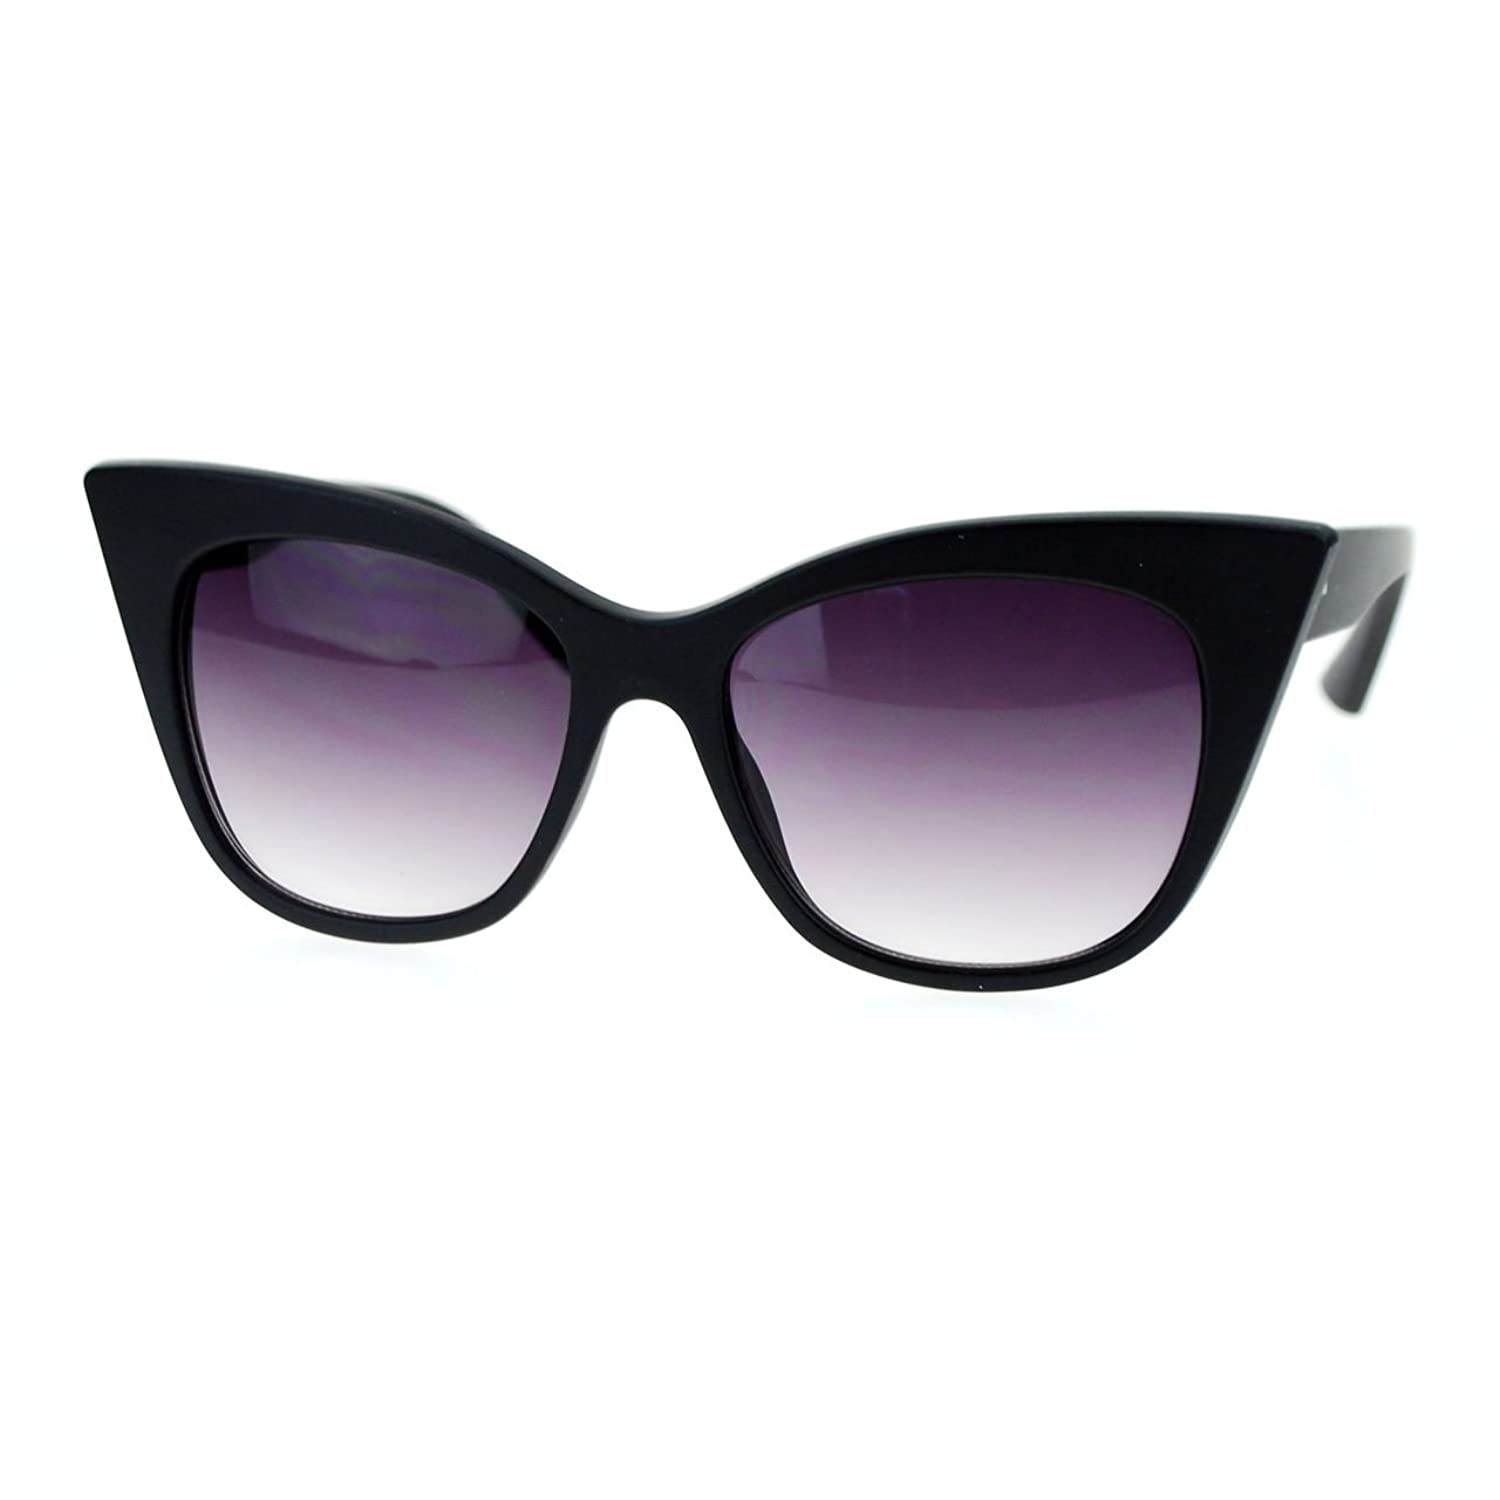 Fashion Womens Sunglasses Oversized Square Cateye Butterfly Frame